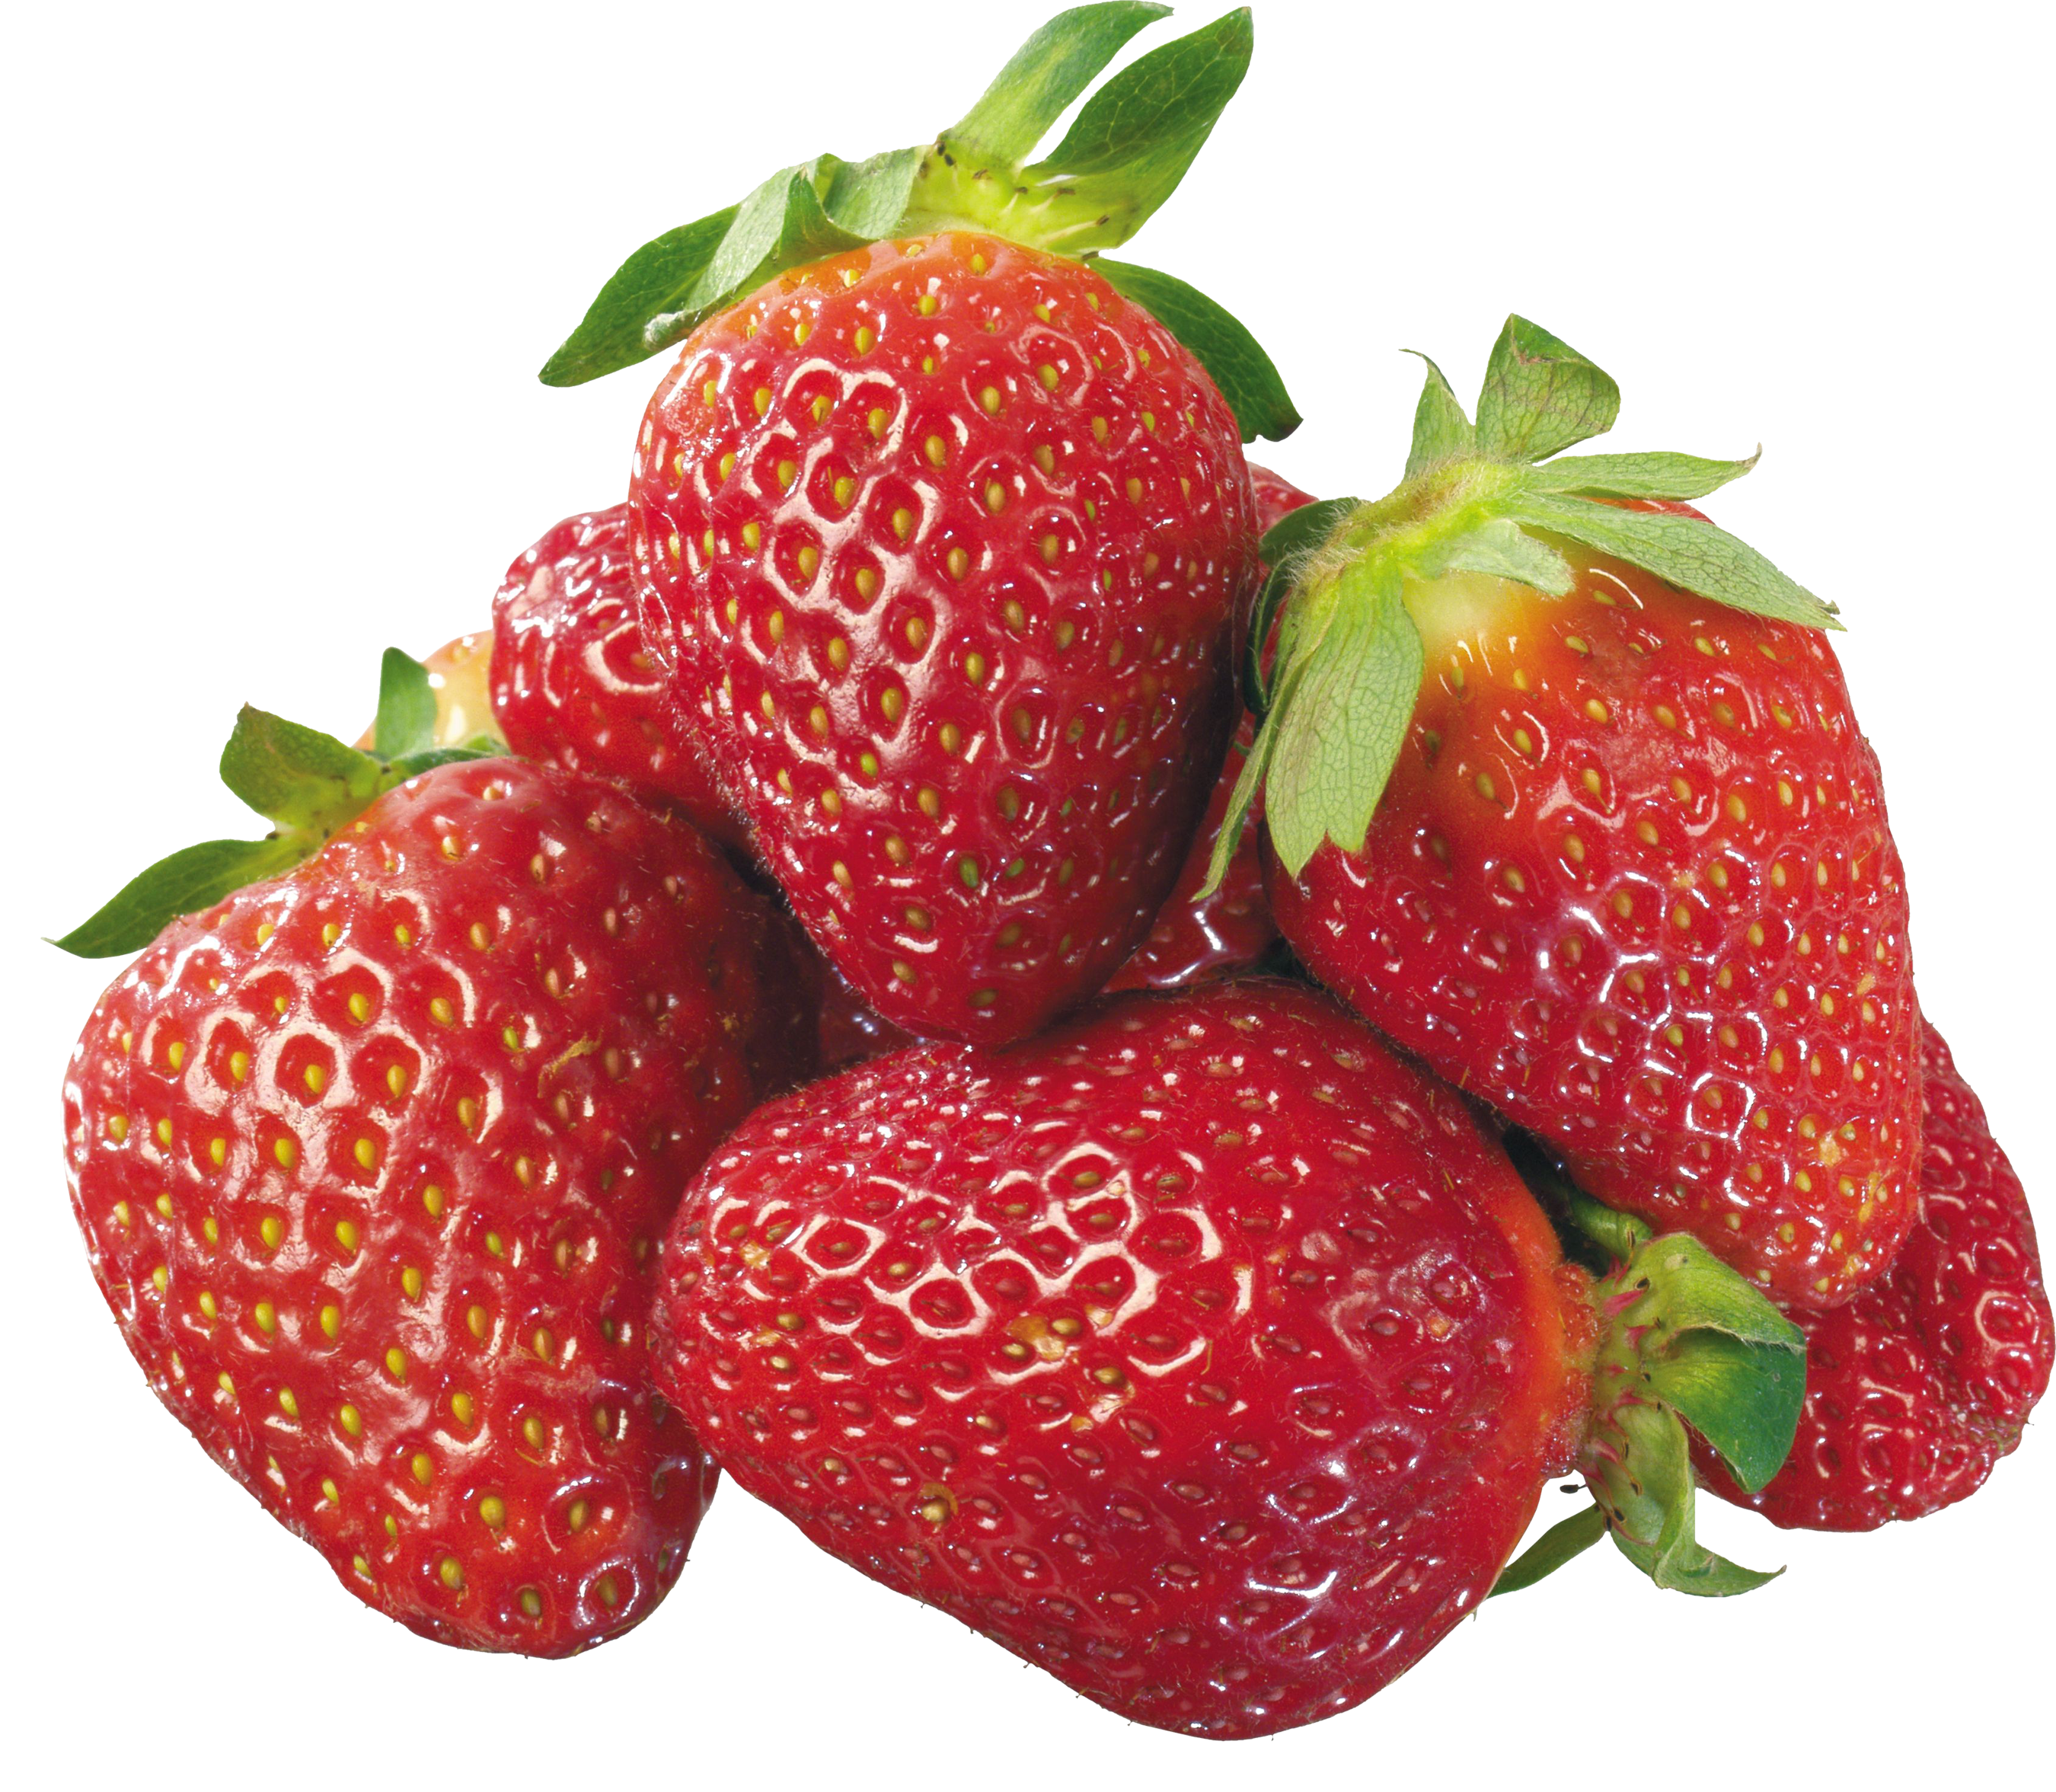 Strawberries clipart face. Strawberry nine isolated stock